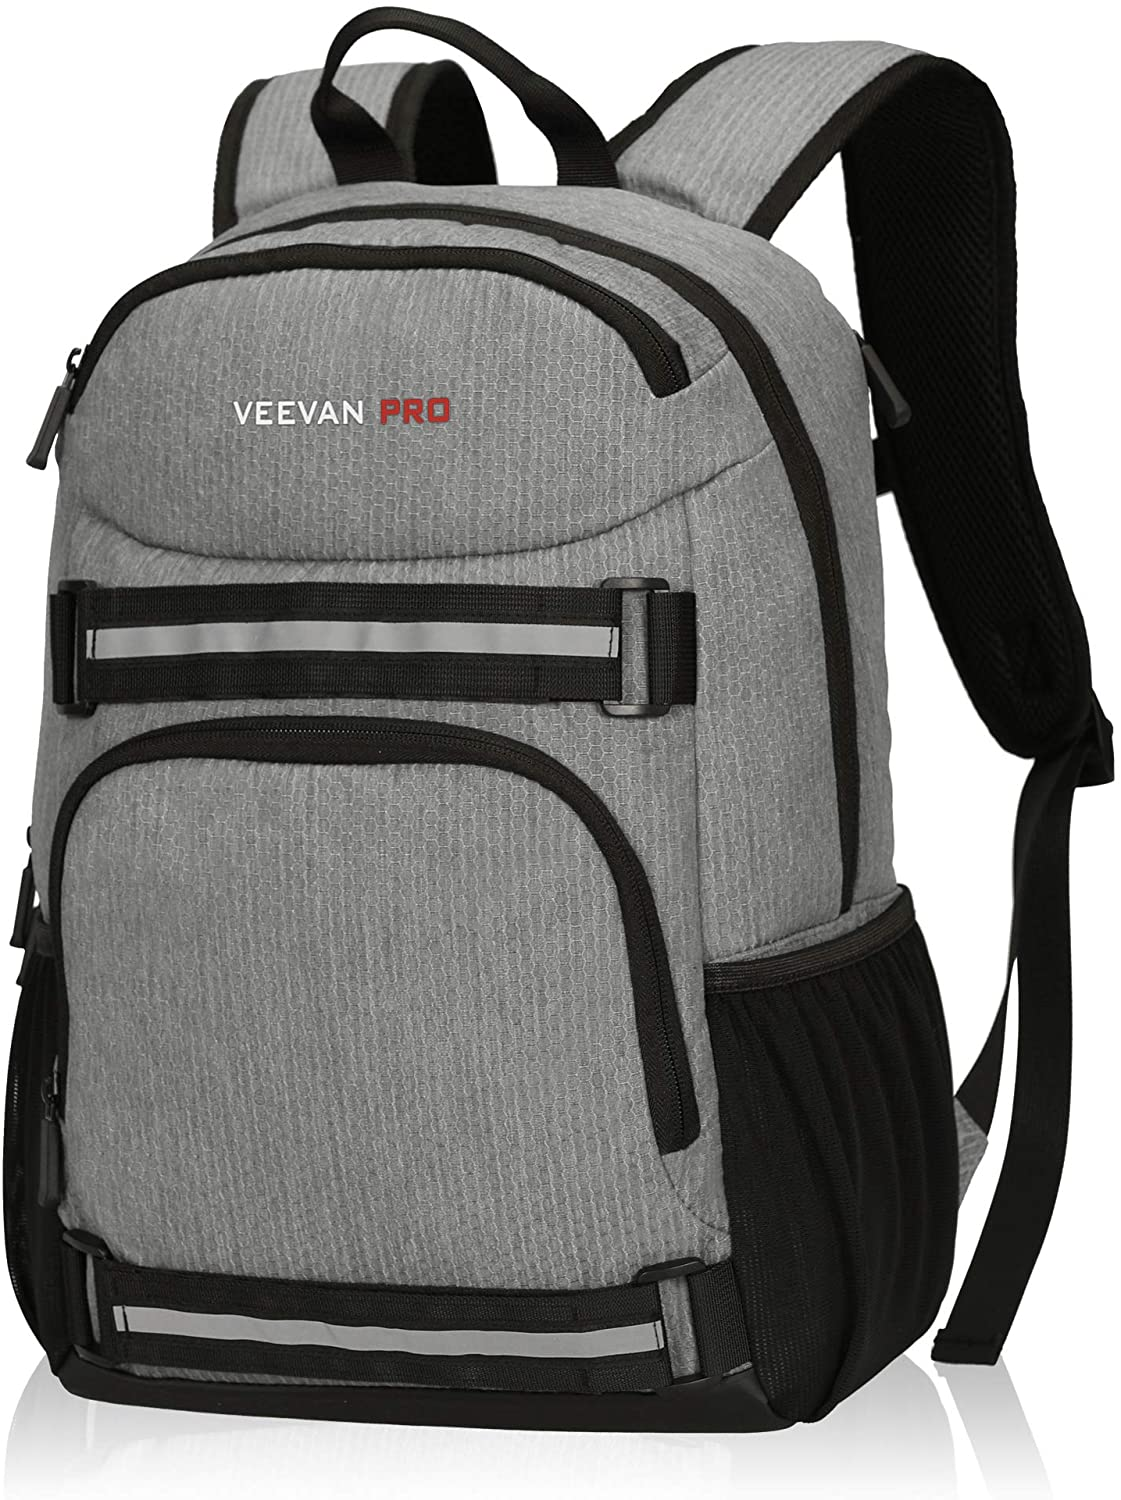 Veevanpro Insulated Cooler Longboard Backpack